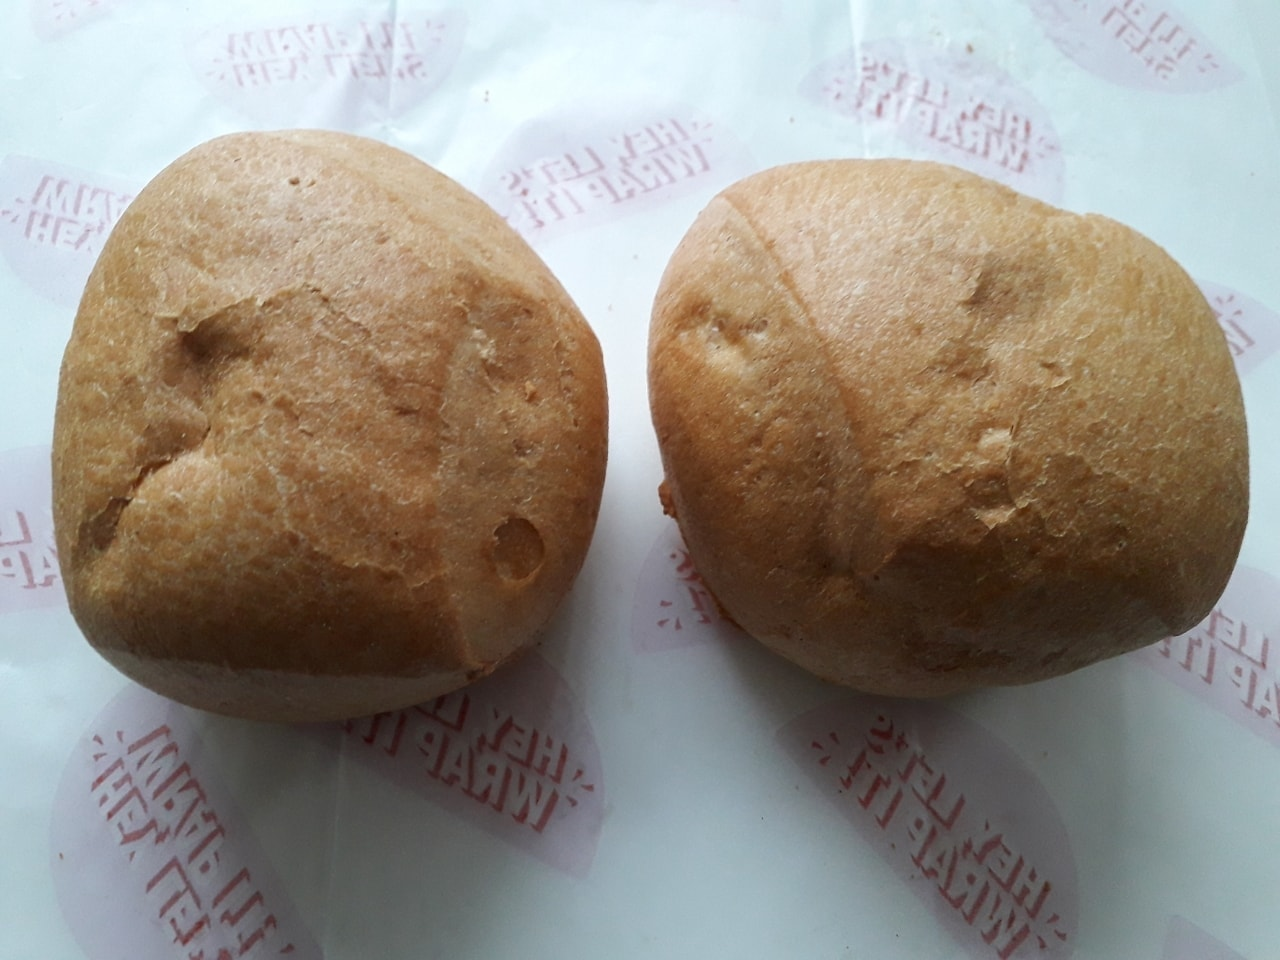 Simple buns from Lindquists